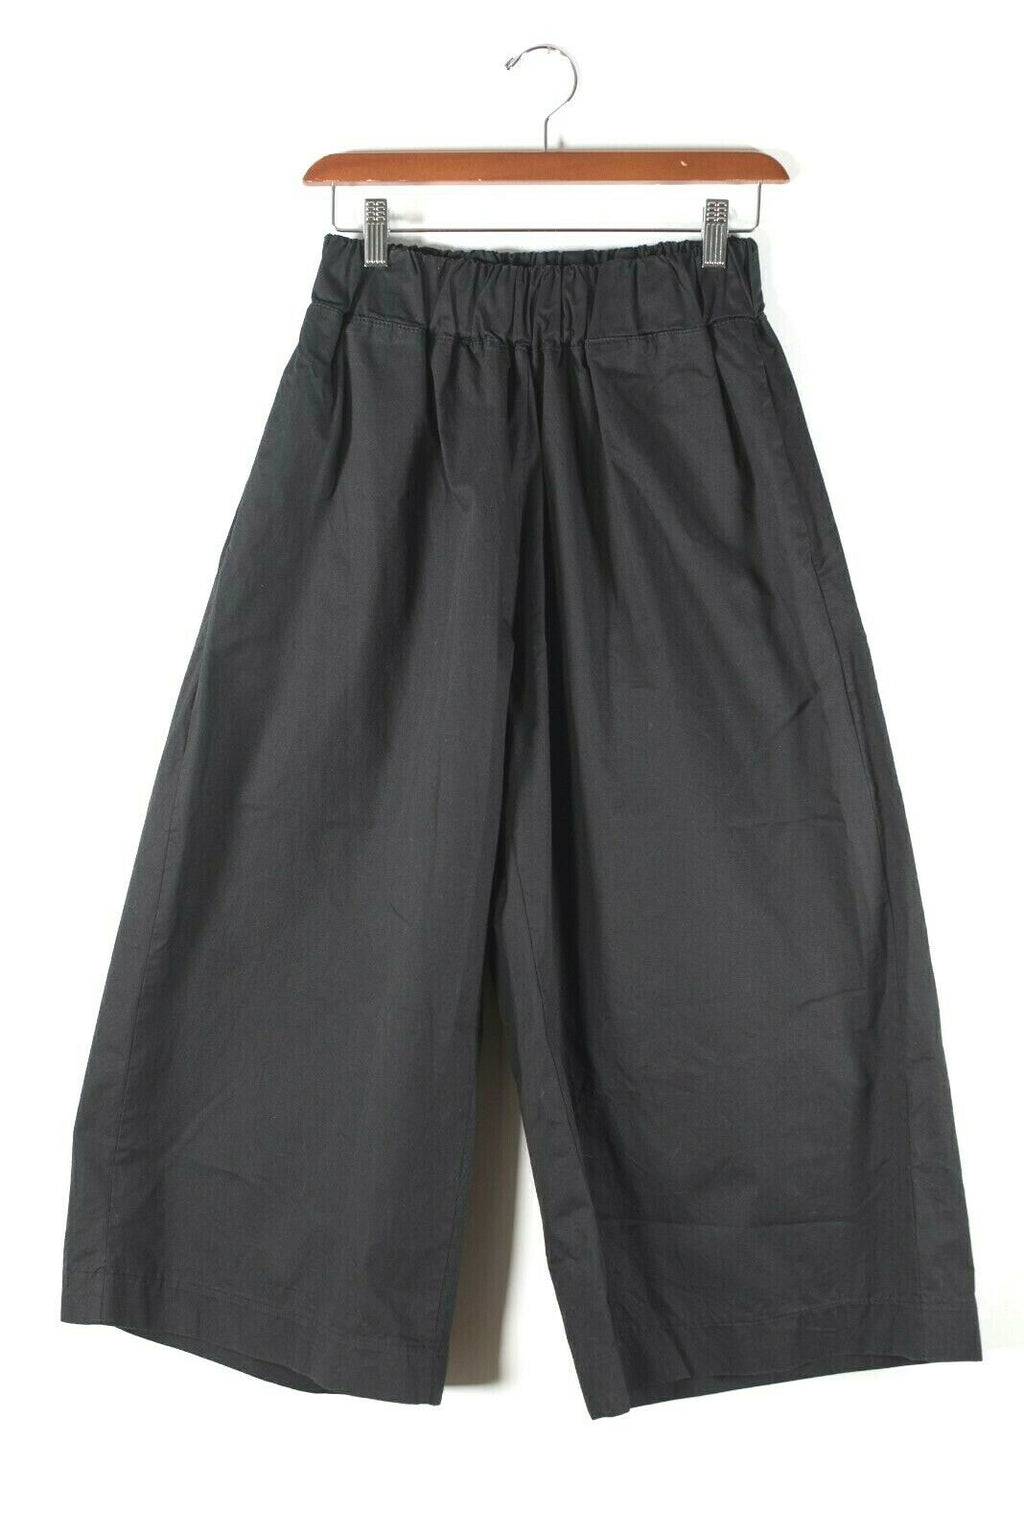 3.3 Field Trip Womens Small Black Pants Elastic Waist Wide Leg Cotton Pockets